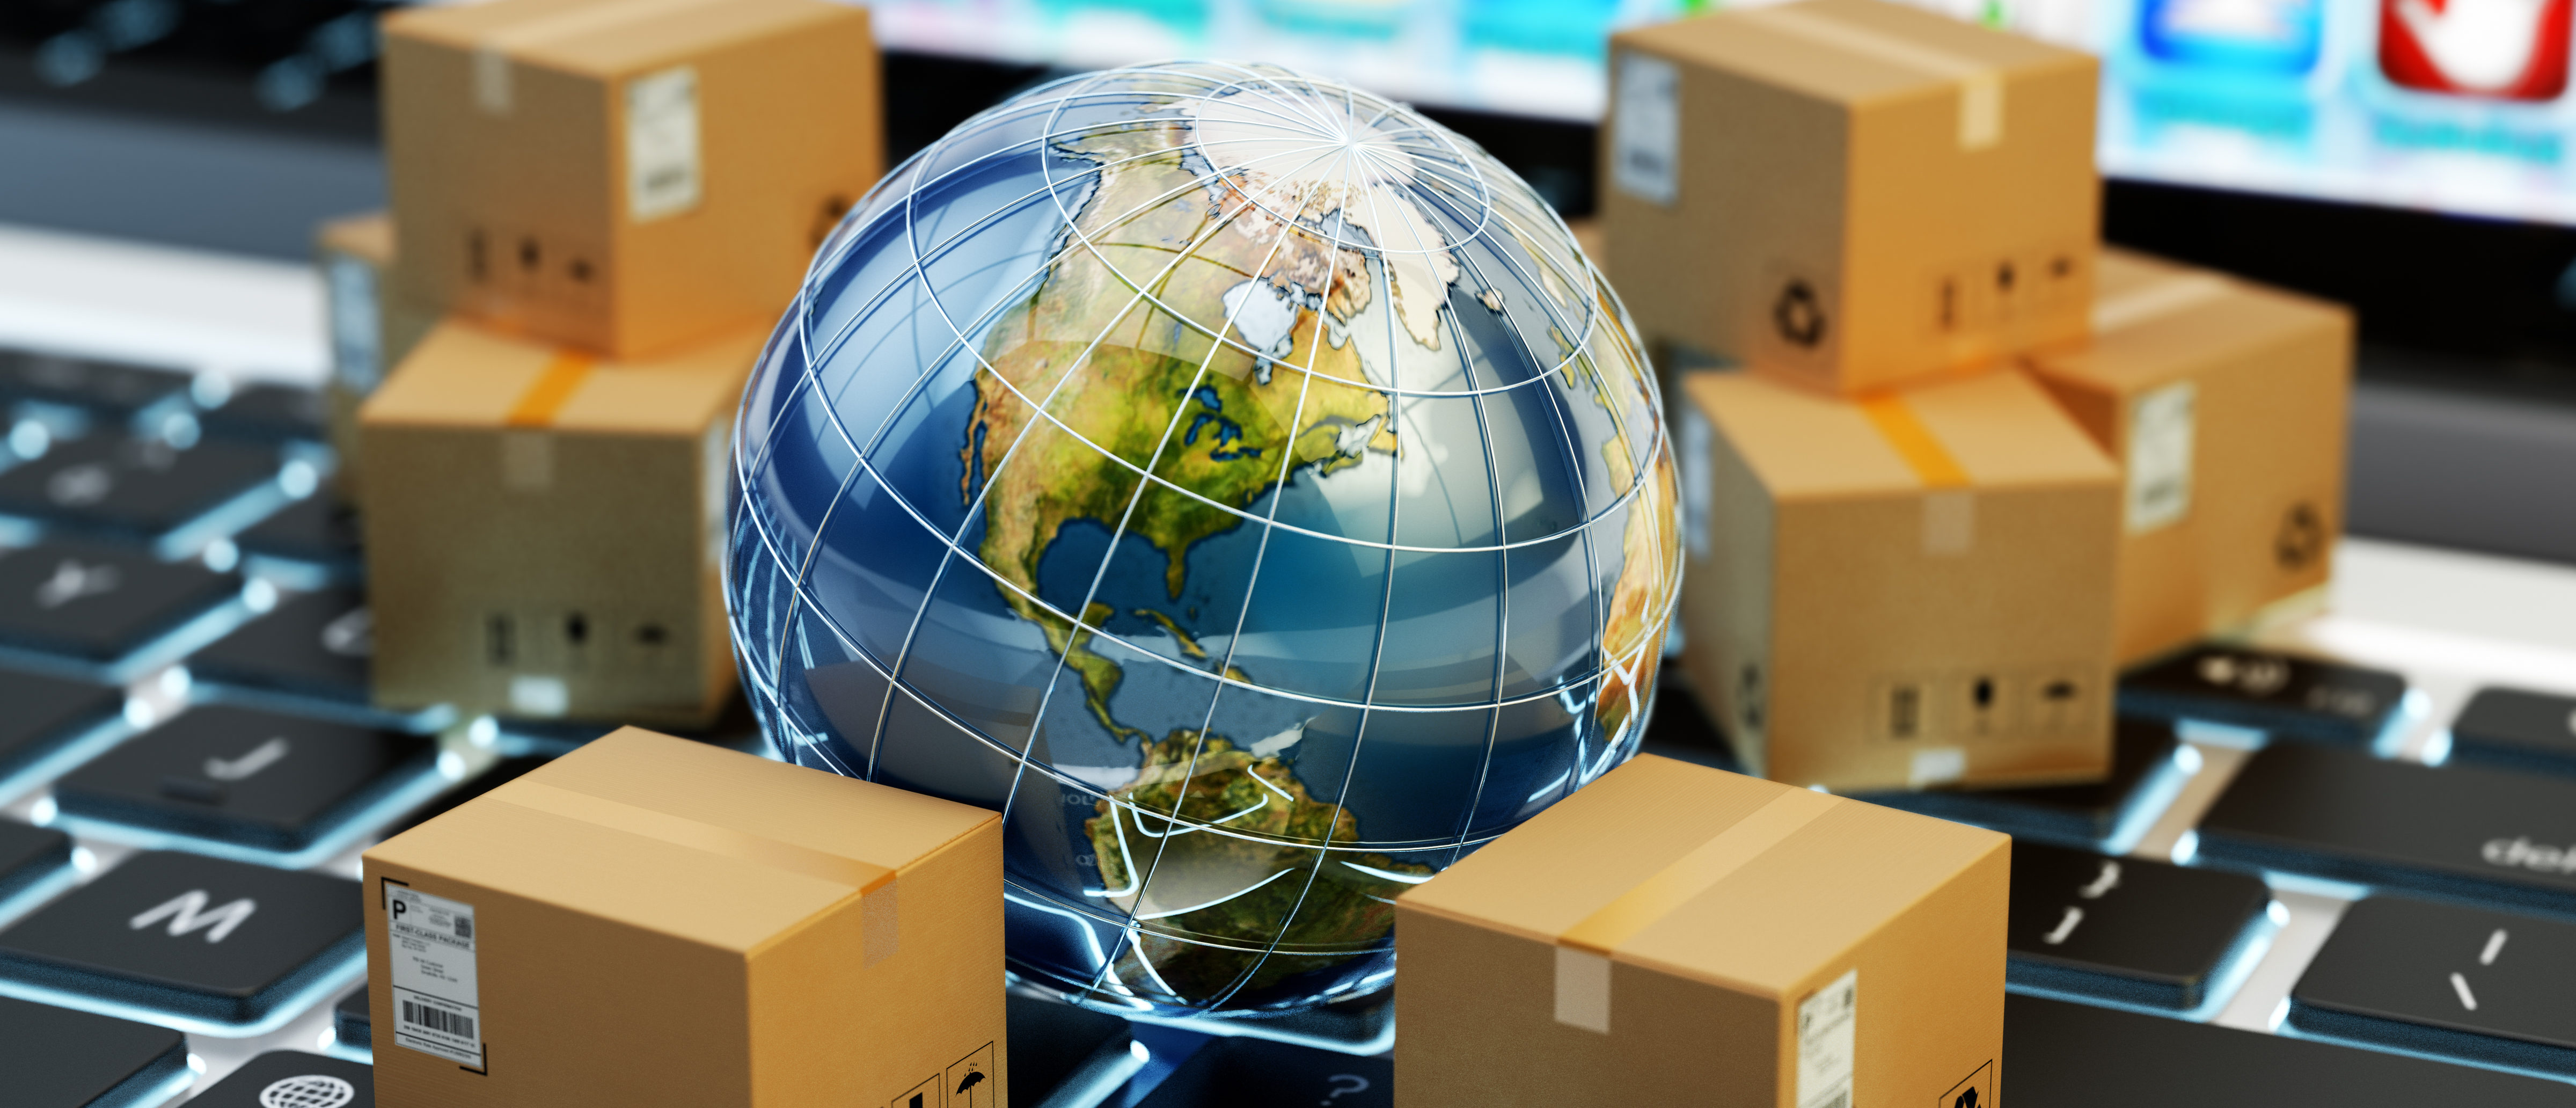 Internet shopping, online purchases, e-commerce, package delivery concept, global transportation business, stack of cardboard boxes and Earth globe on computer, 3d illustration - Elements by NASA. (Shutterstock)